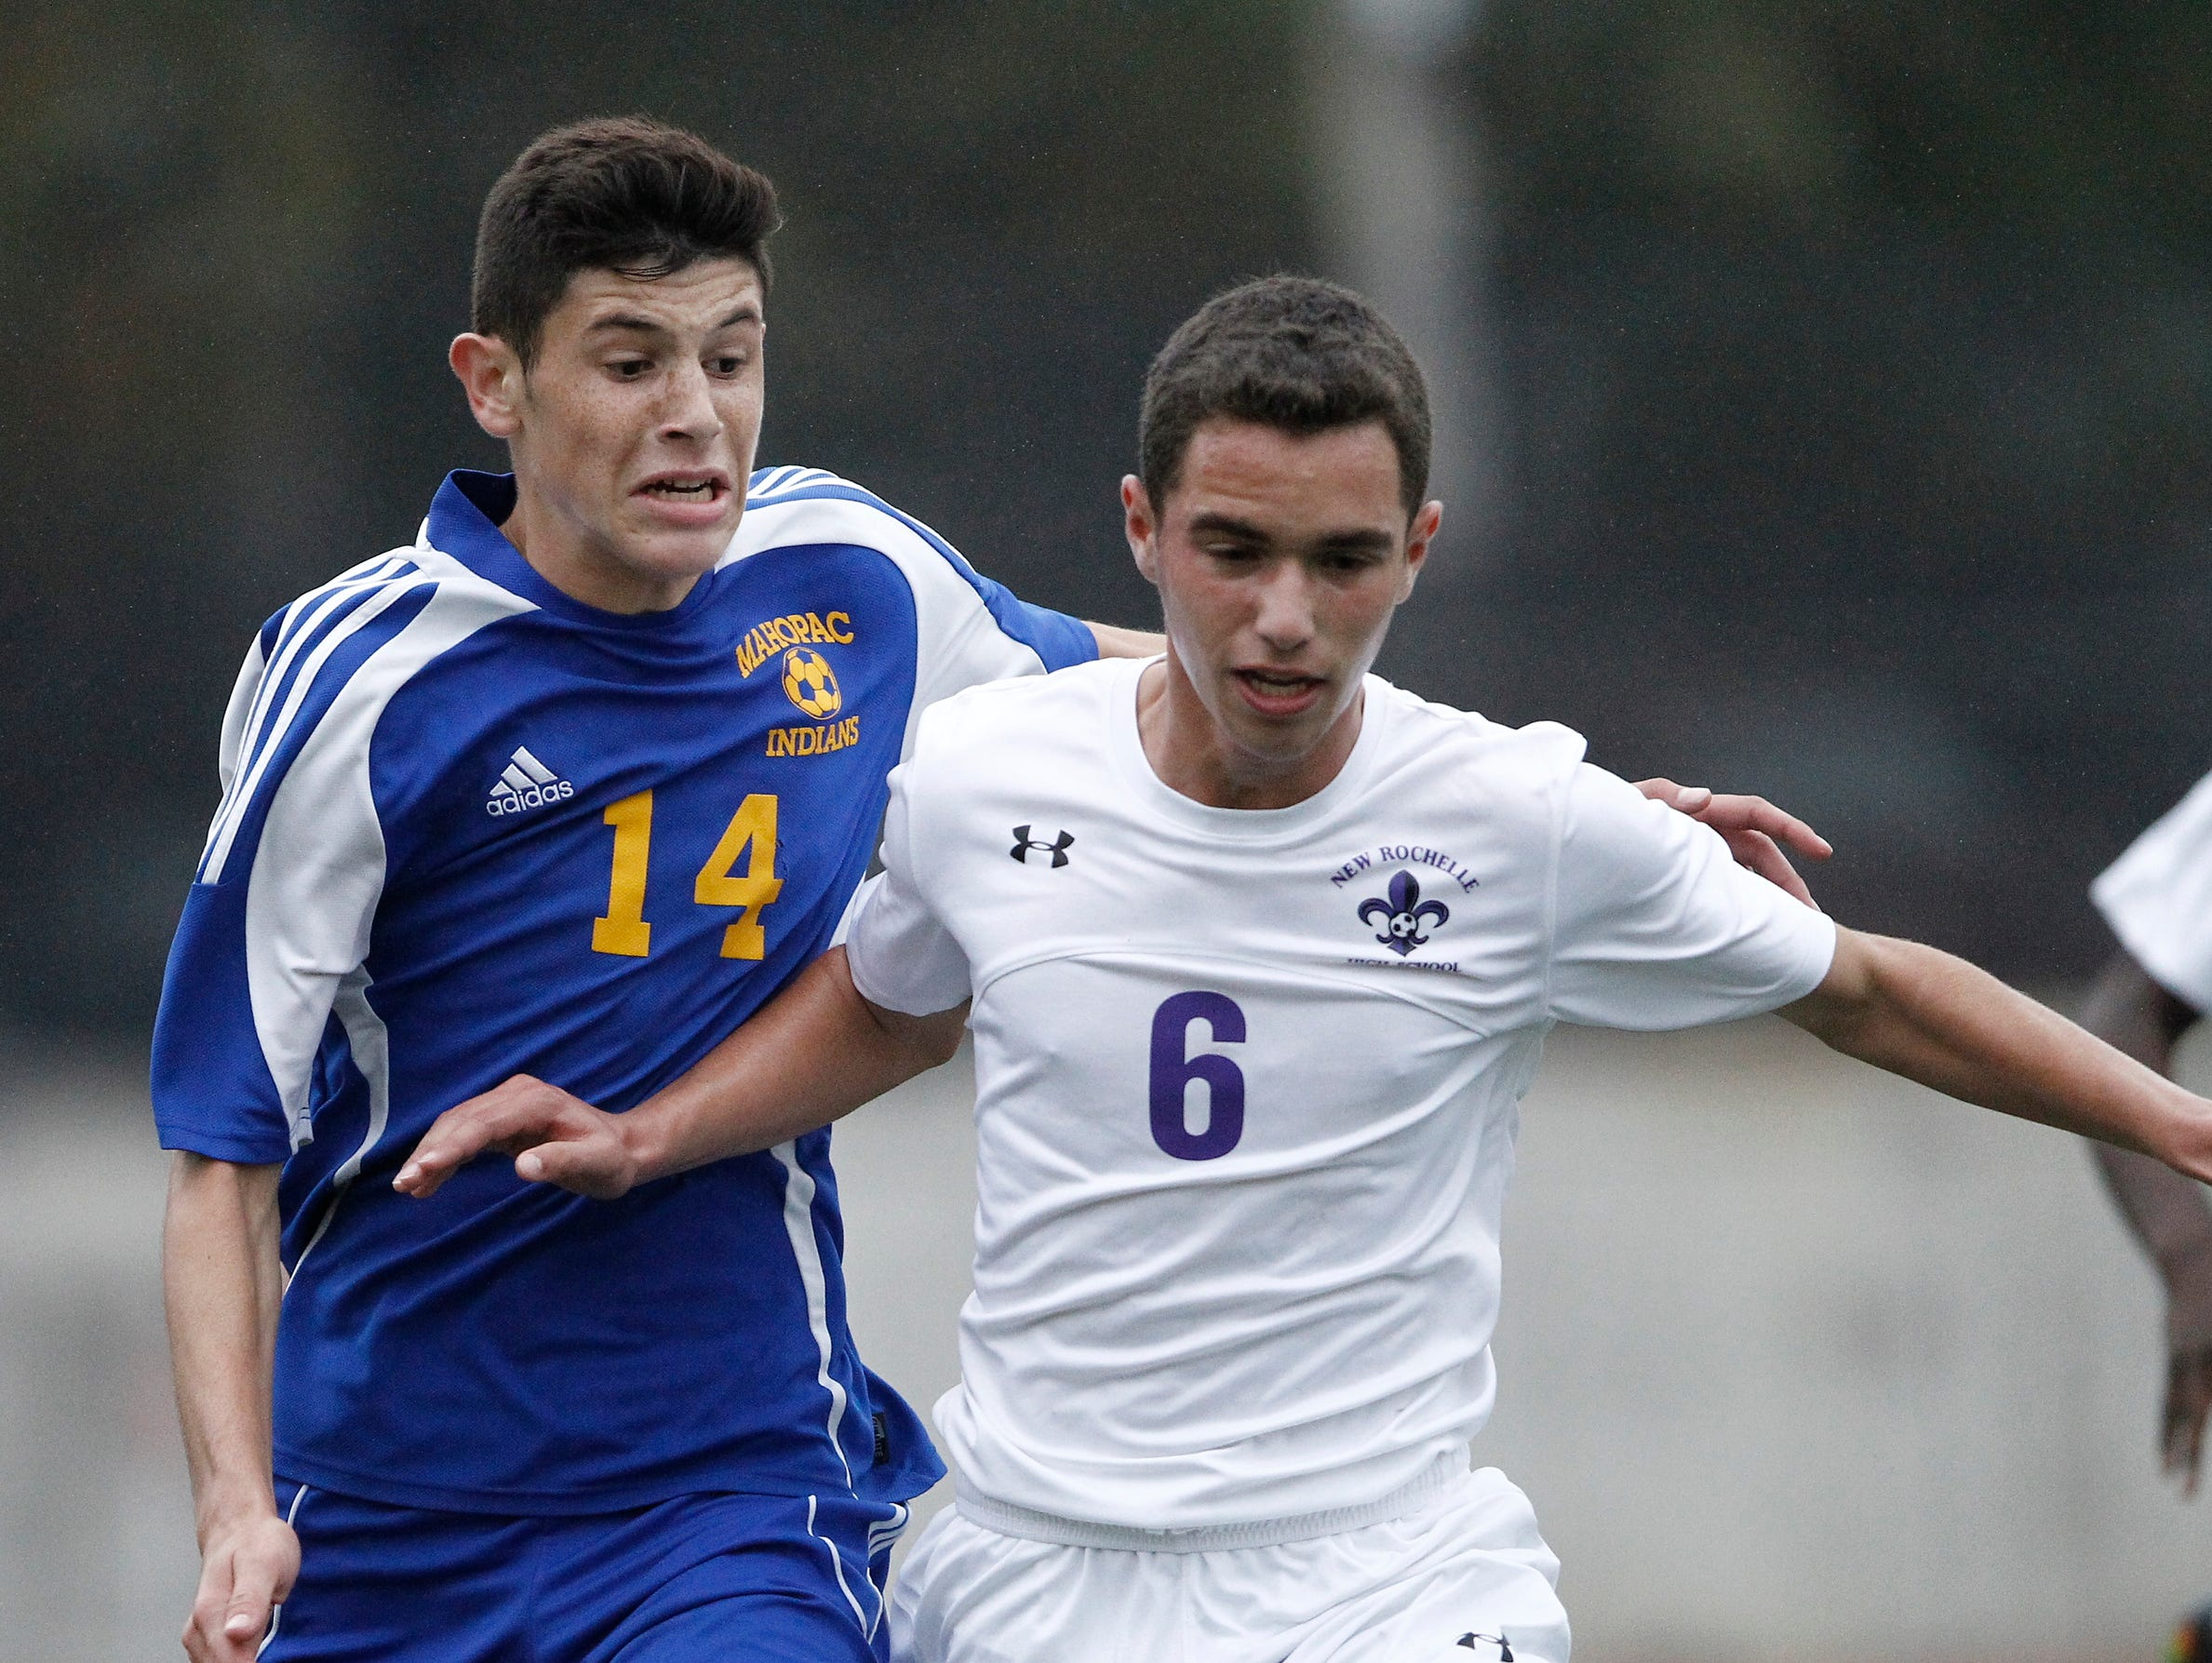 New Rochelle's Andrew Sirola (6) and Mahopac's Augie Djerdjaj (14) battle for possession defends during the the boys soccer Class AA first round at New Rochelle High School in New Rochelle on Thursday, October 20, 2016. New Rochelle advances with their 2-0 win.